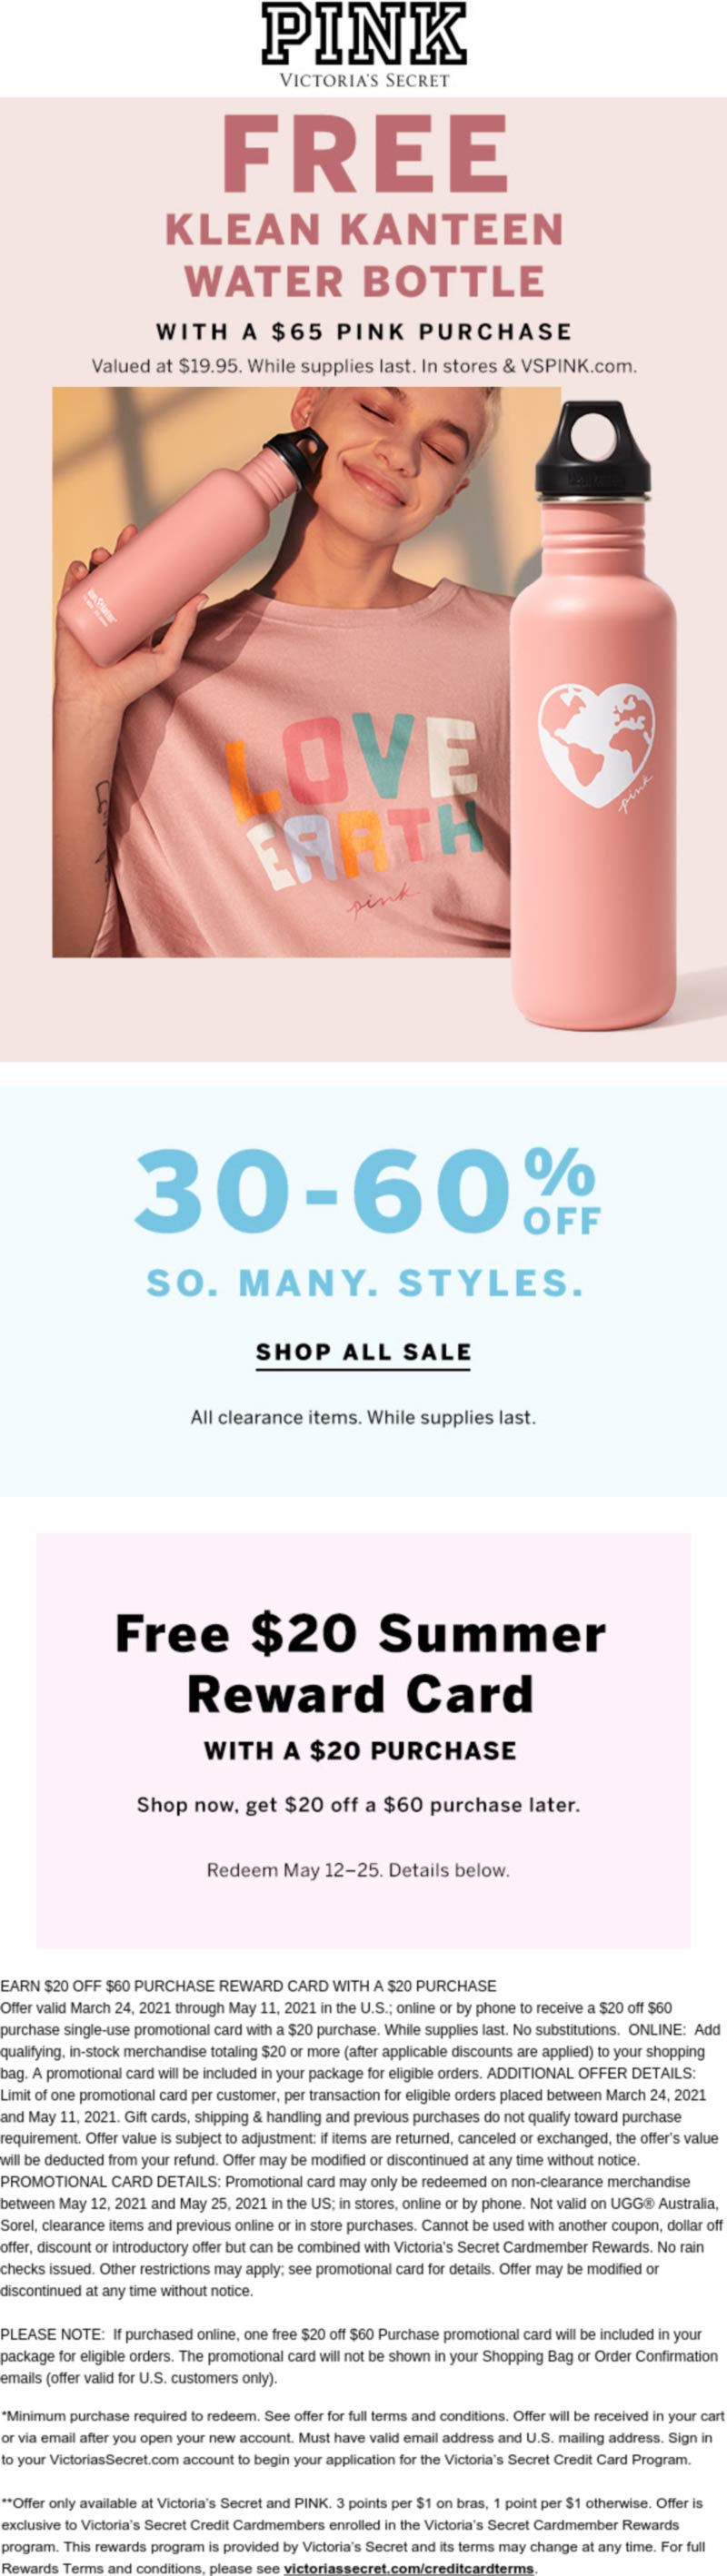 PINK stores Coupon  Free kanteen water bottle on $65 & more at Victorias Secret PINK, ditto online #pink